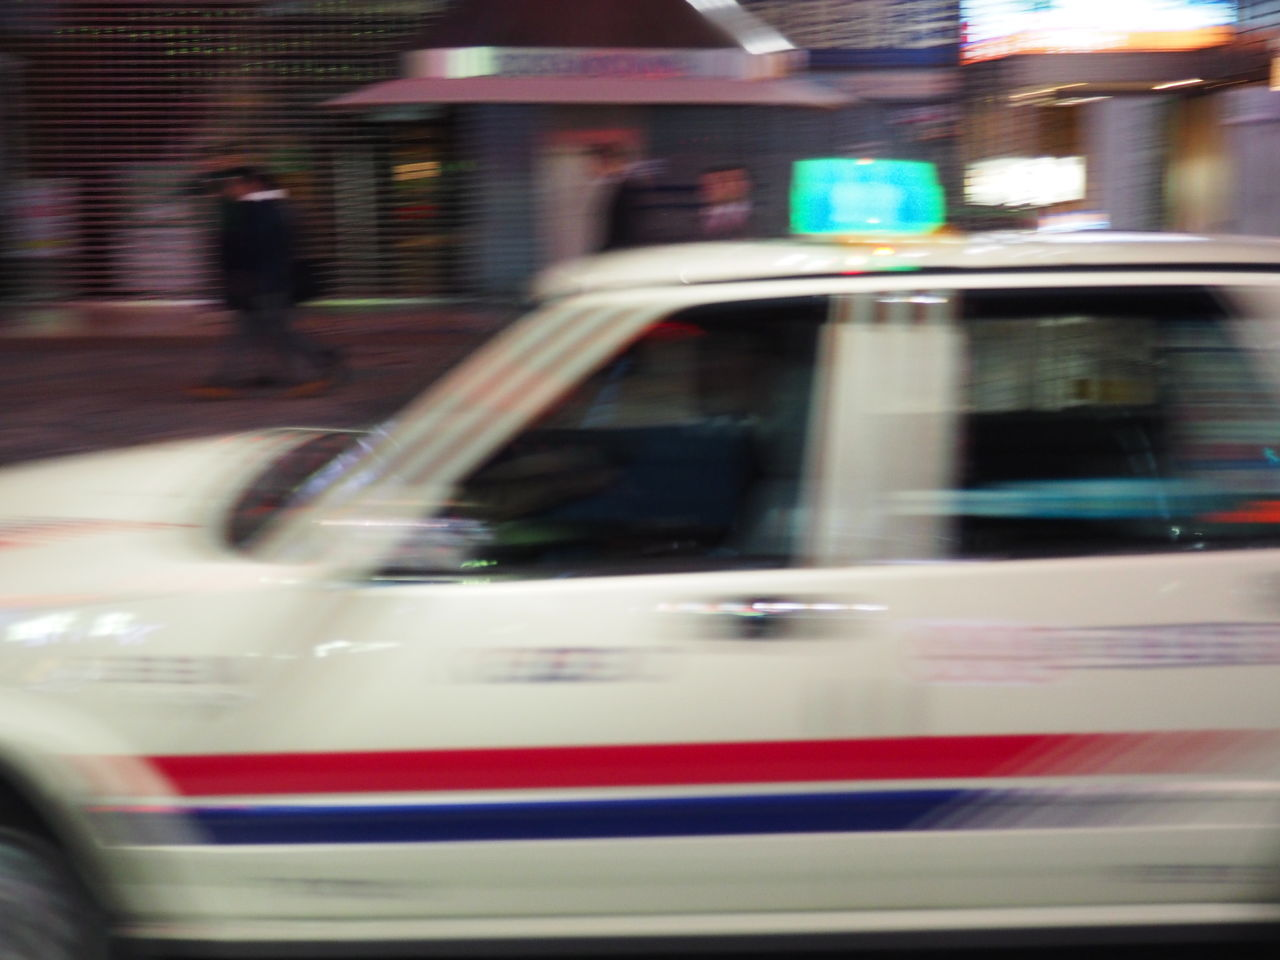 Architecture Blurred Motion Close-up Day Fast Mode Of Transport Motion No People Outdoors Public Transportation Speed Speeding Taxi Transportation